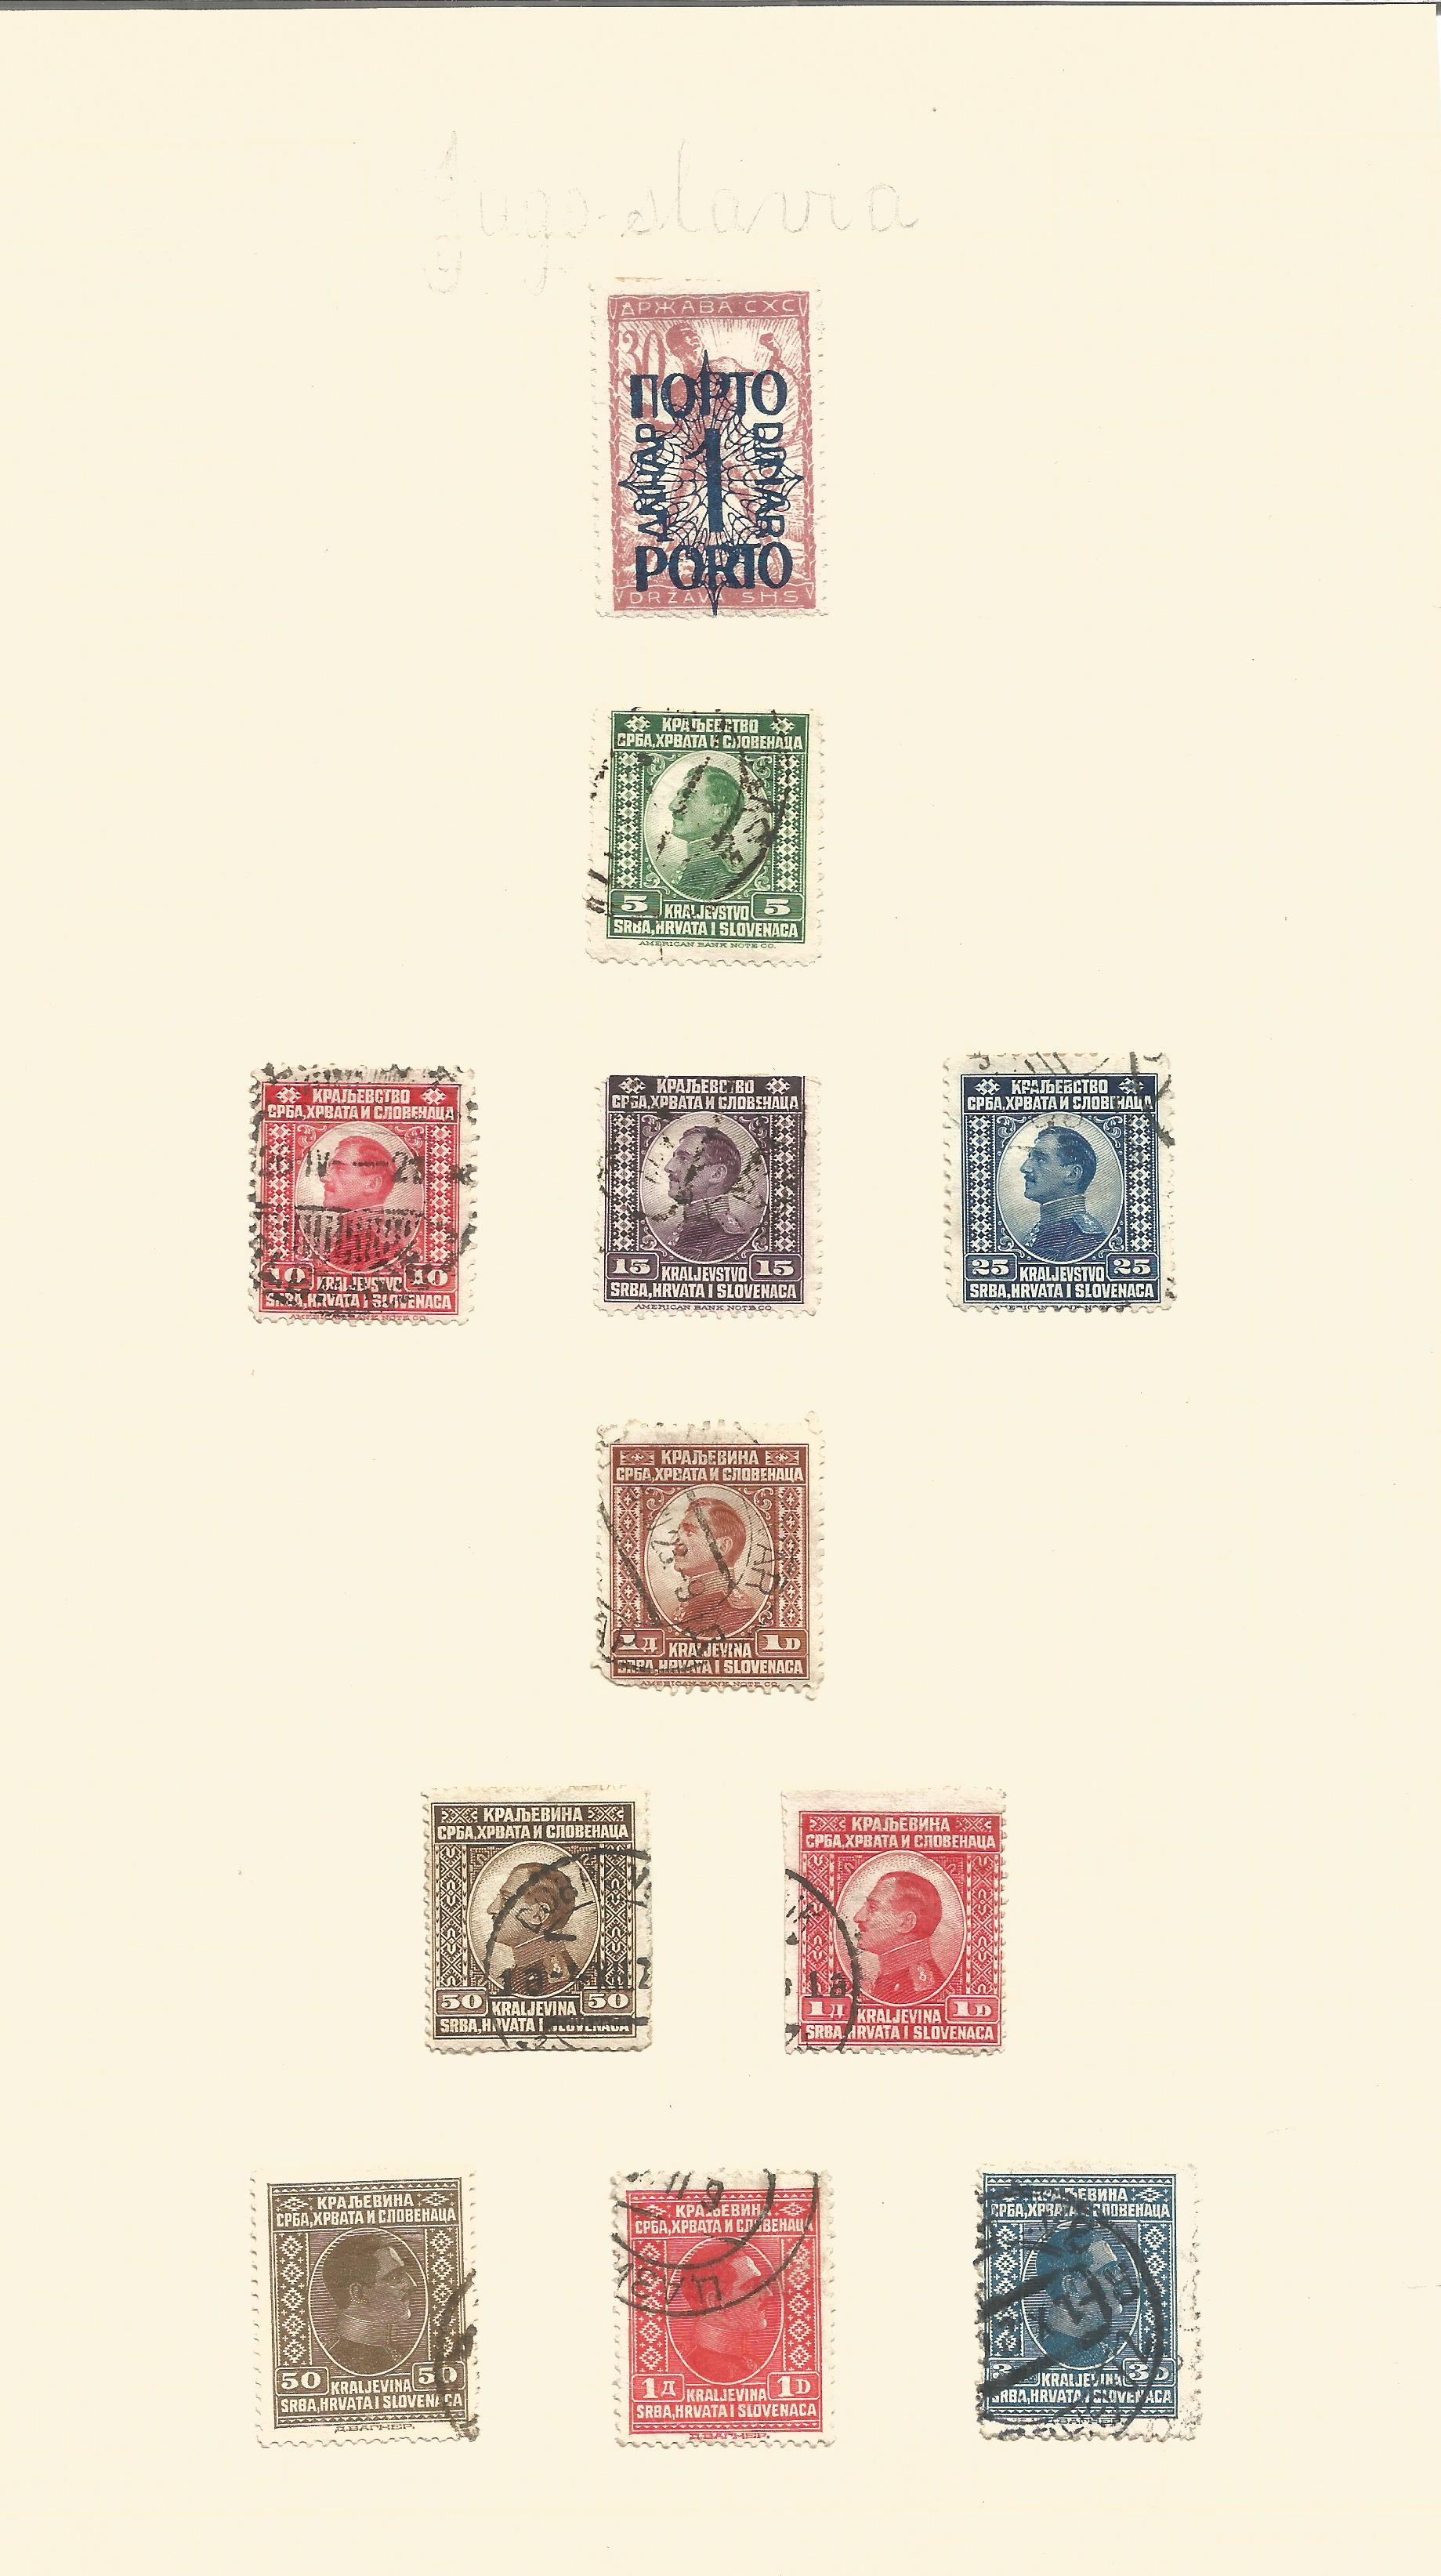 Yugoslavia, Latvia and Lebanon stamp collection on 8 loose pages. Good condition. We combine postage